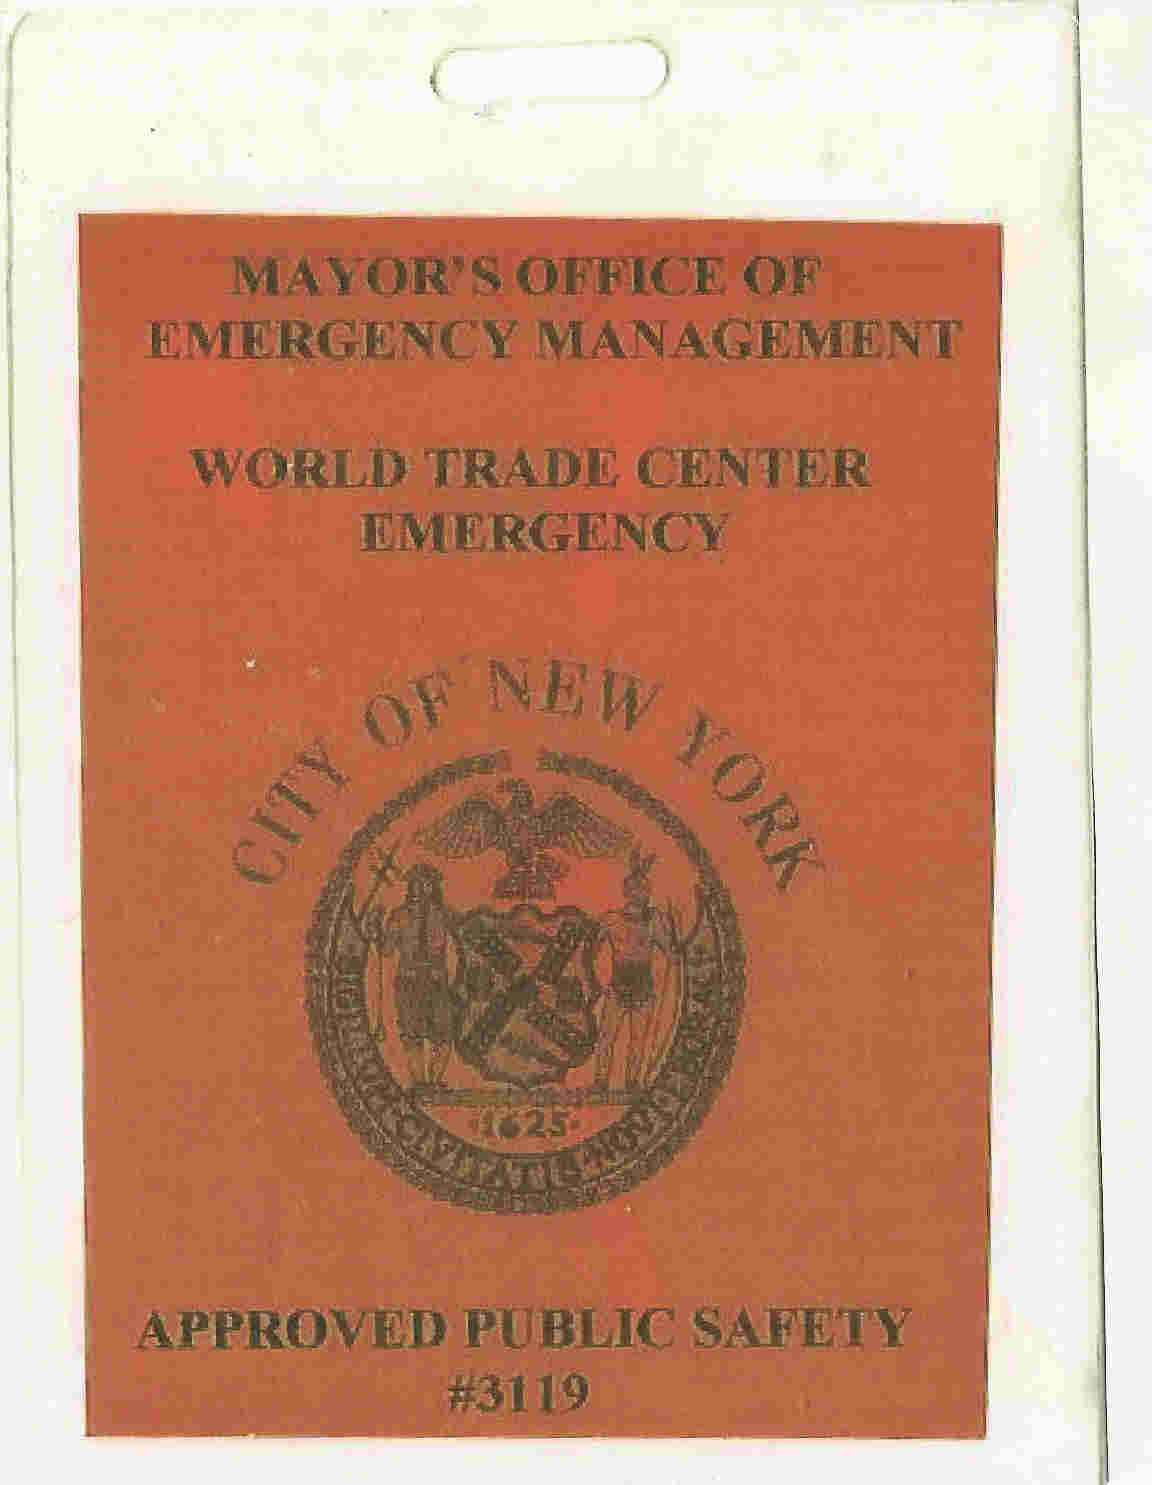 Official WTC Emergency Badge #3119 worn by Doug Copp